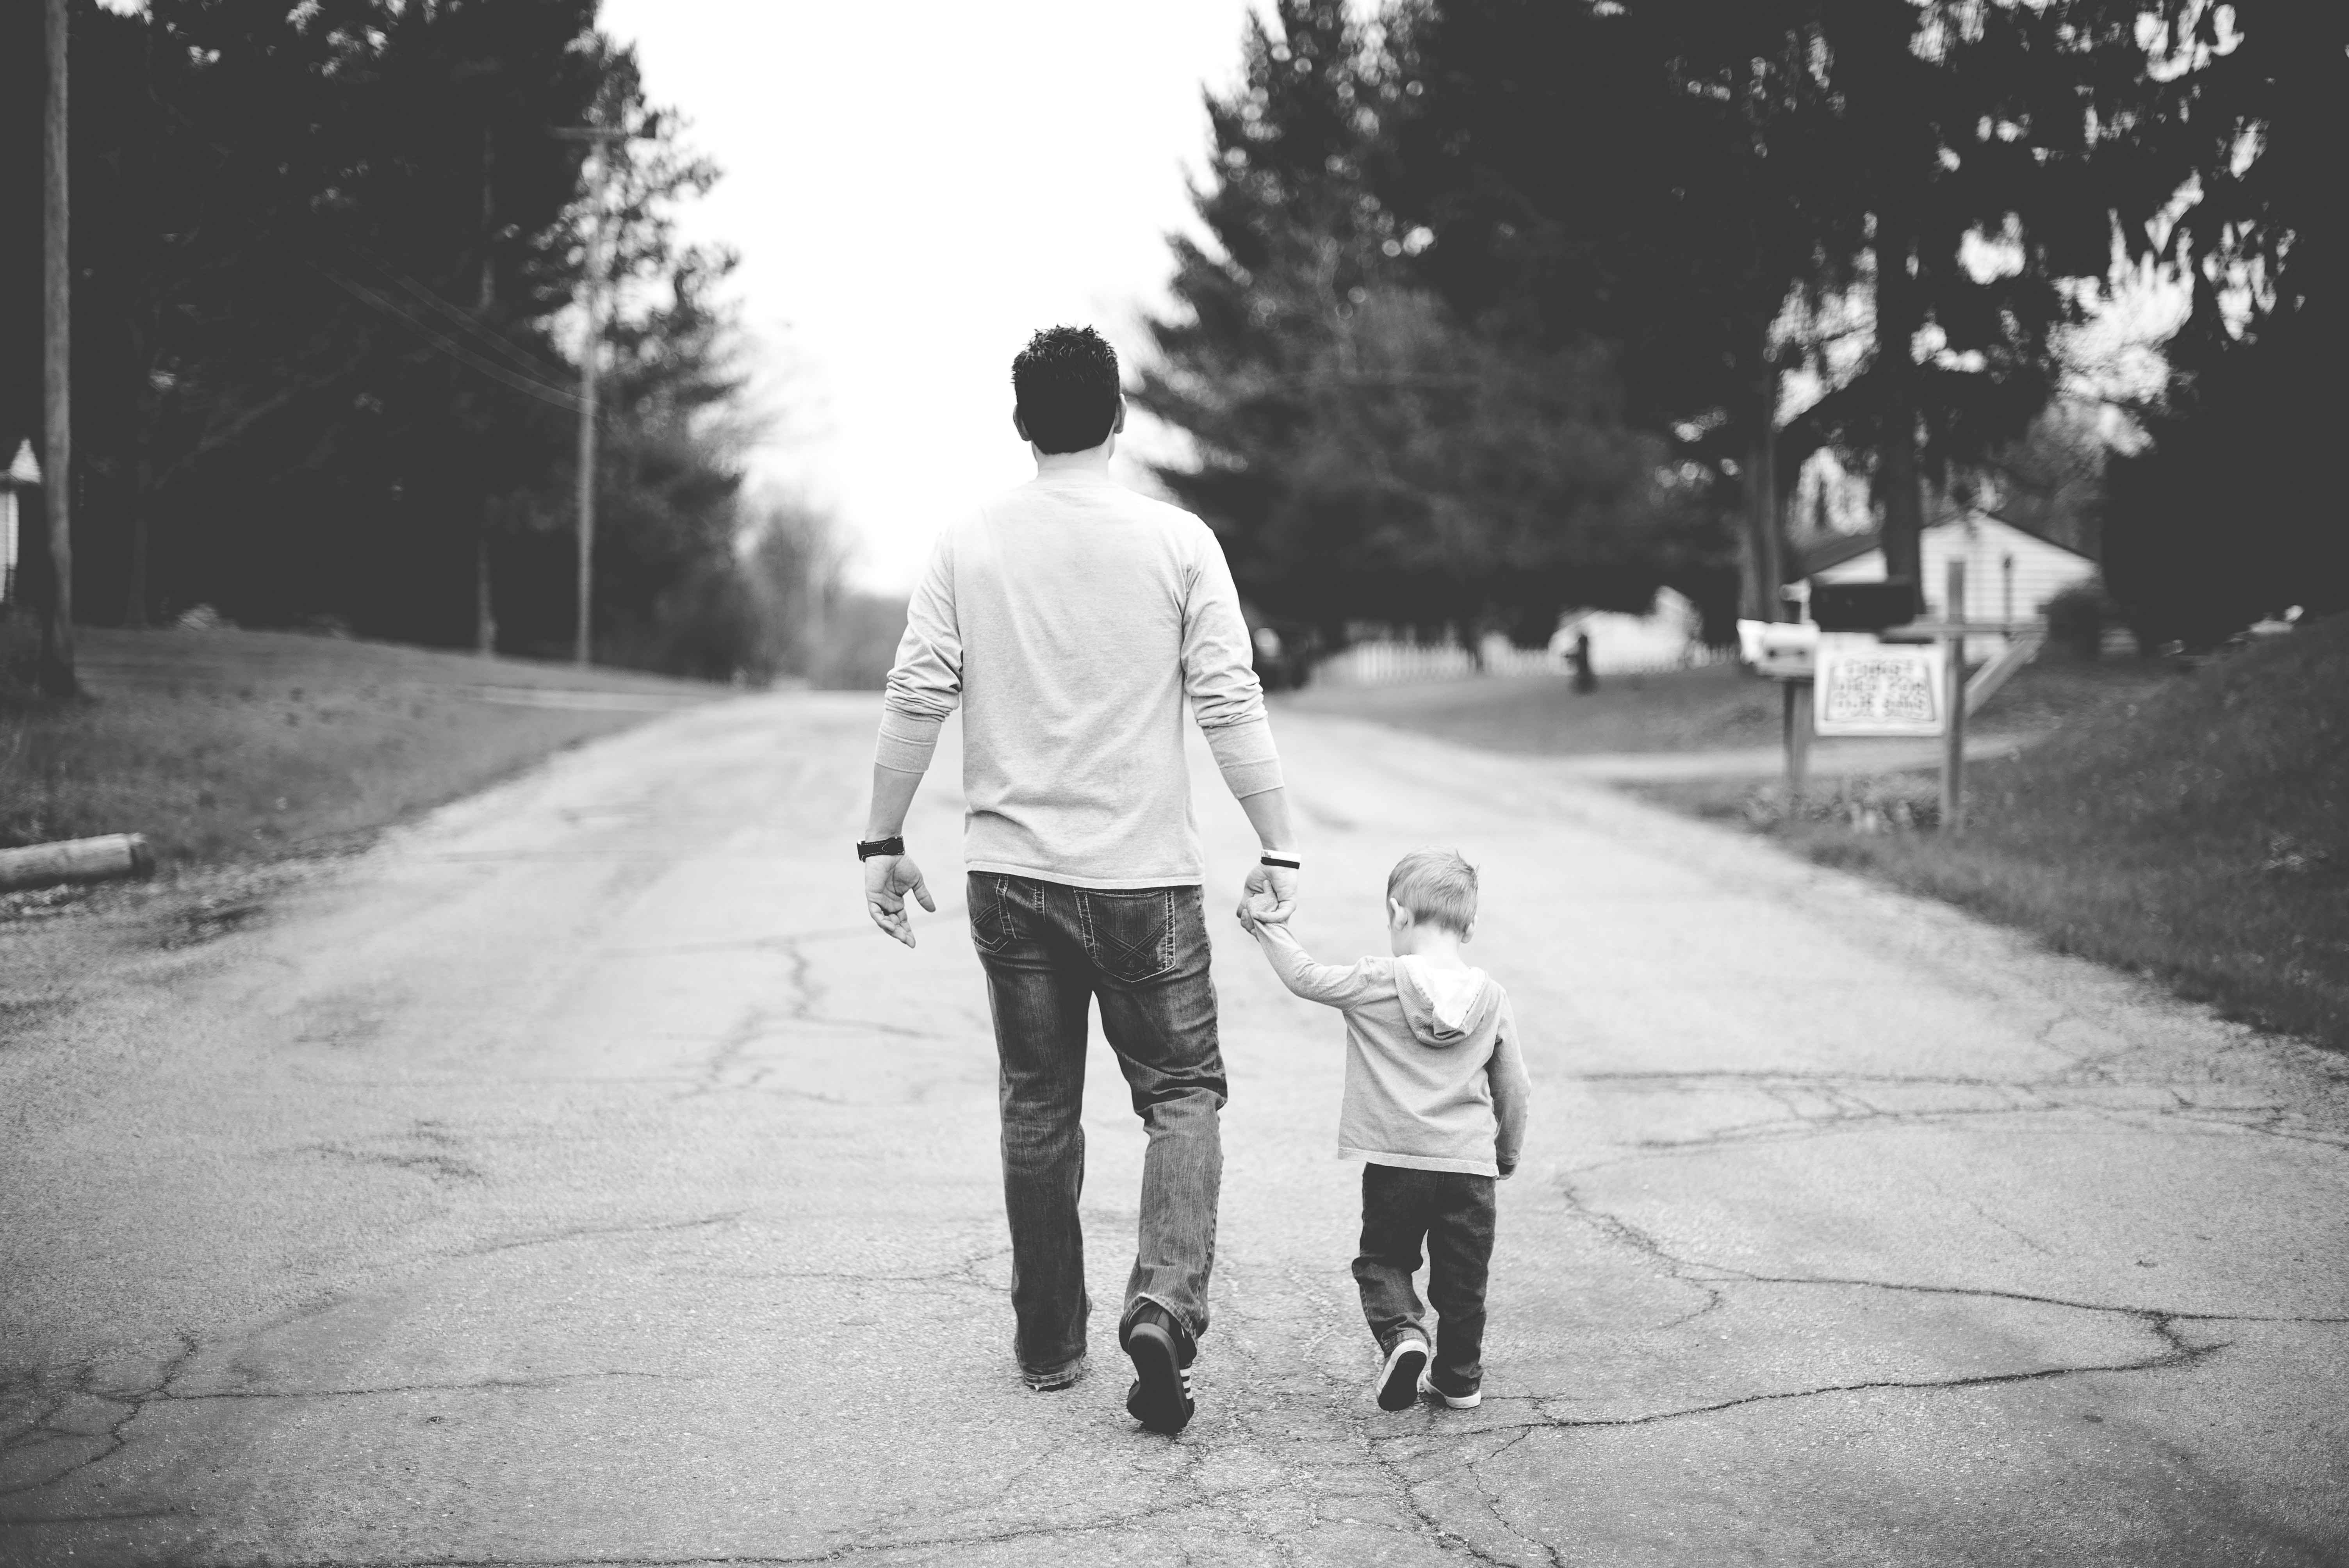 A dad walking with his toddler.